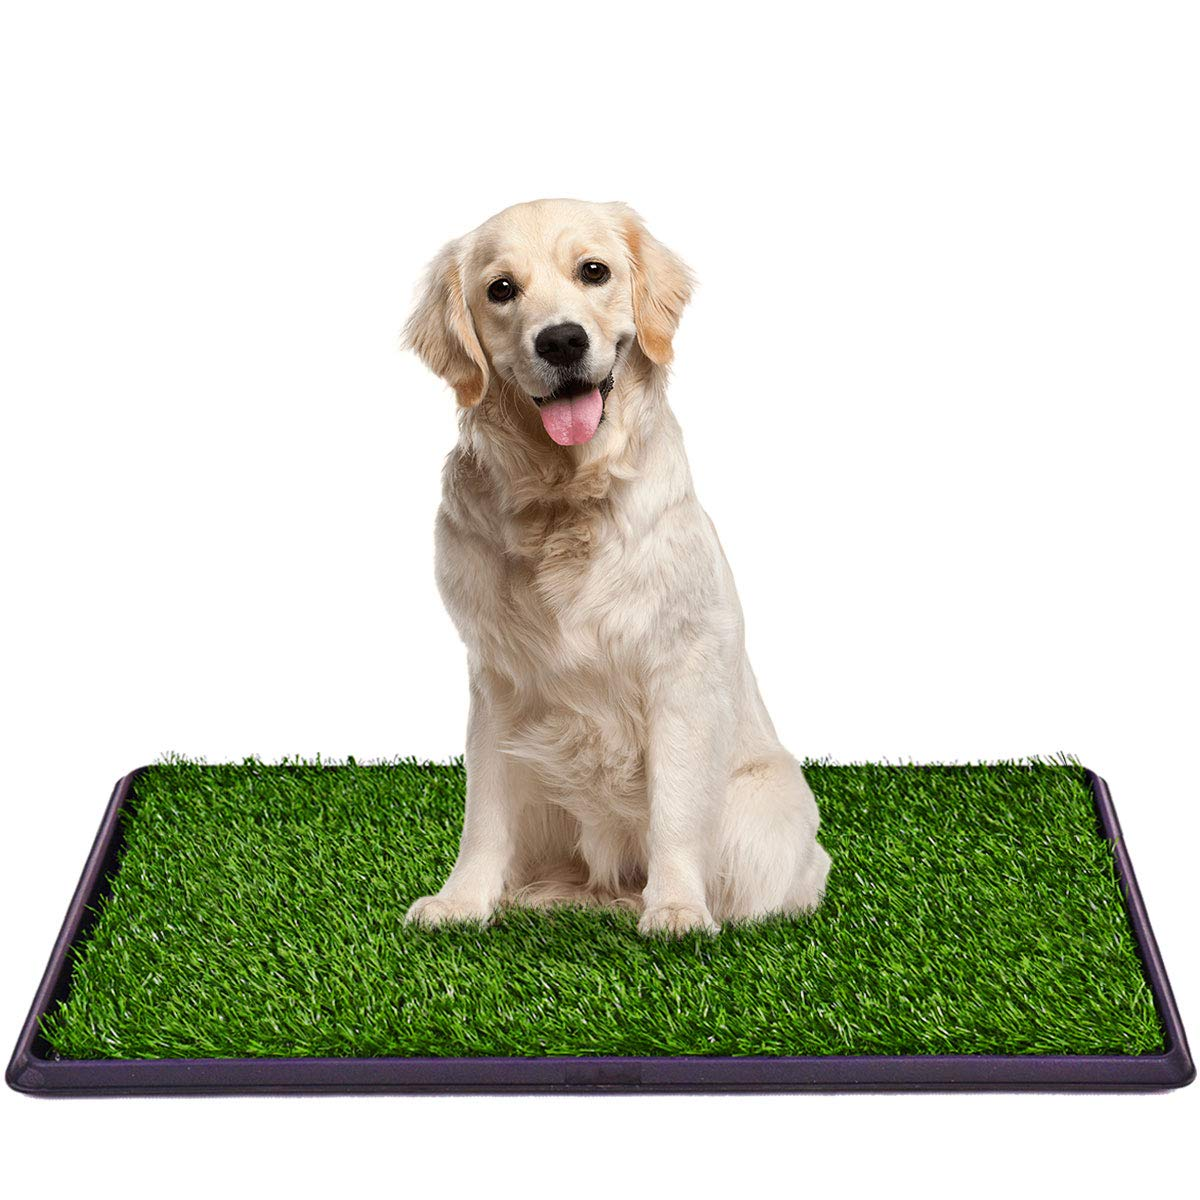 Giantex Dog Puppy Pet Potty Pad, Home Training Toilet Pad, Grass Surface Portable Dog Mat Turf Patch Bathroom Indoor Outdoor (30''x20'') by Giantex